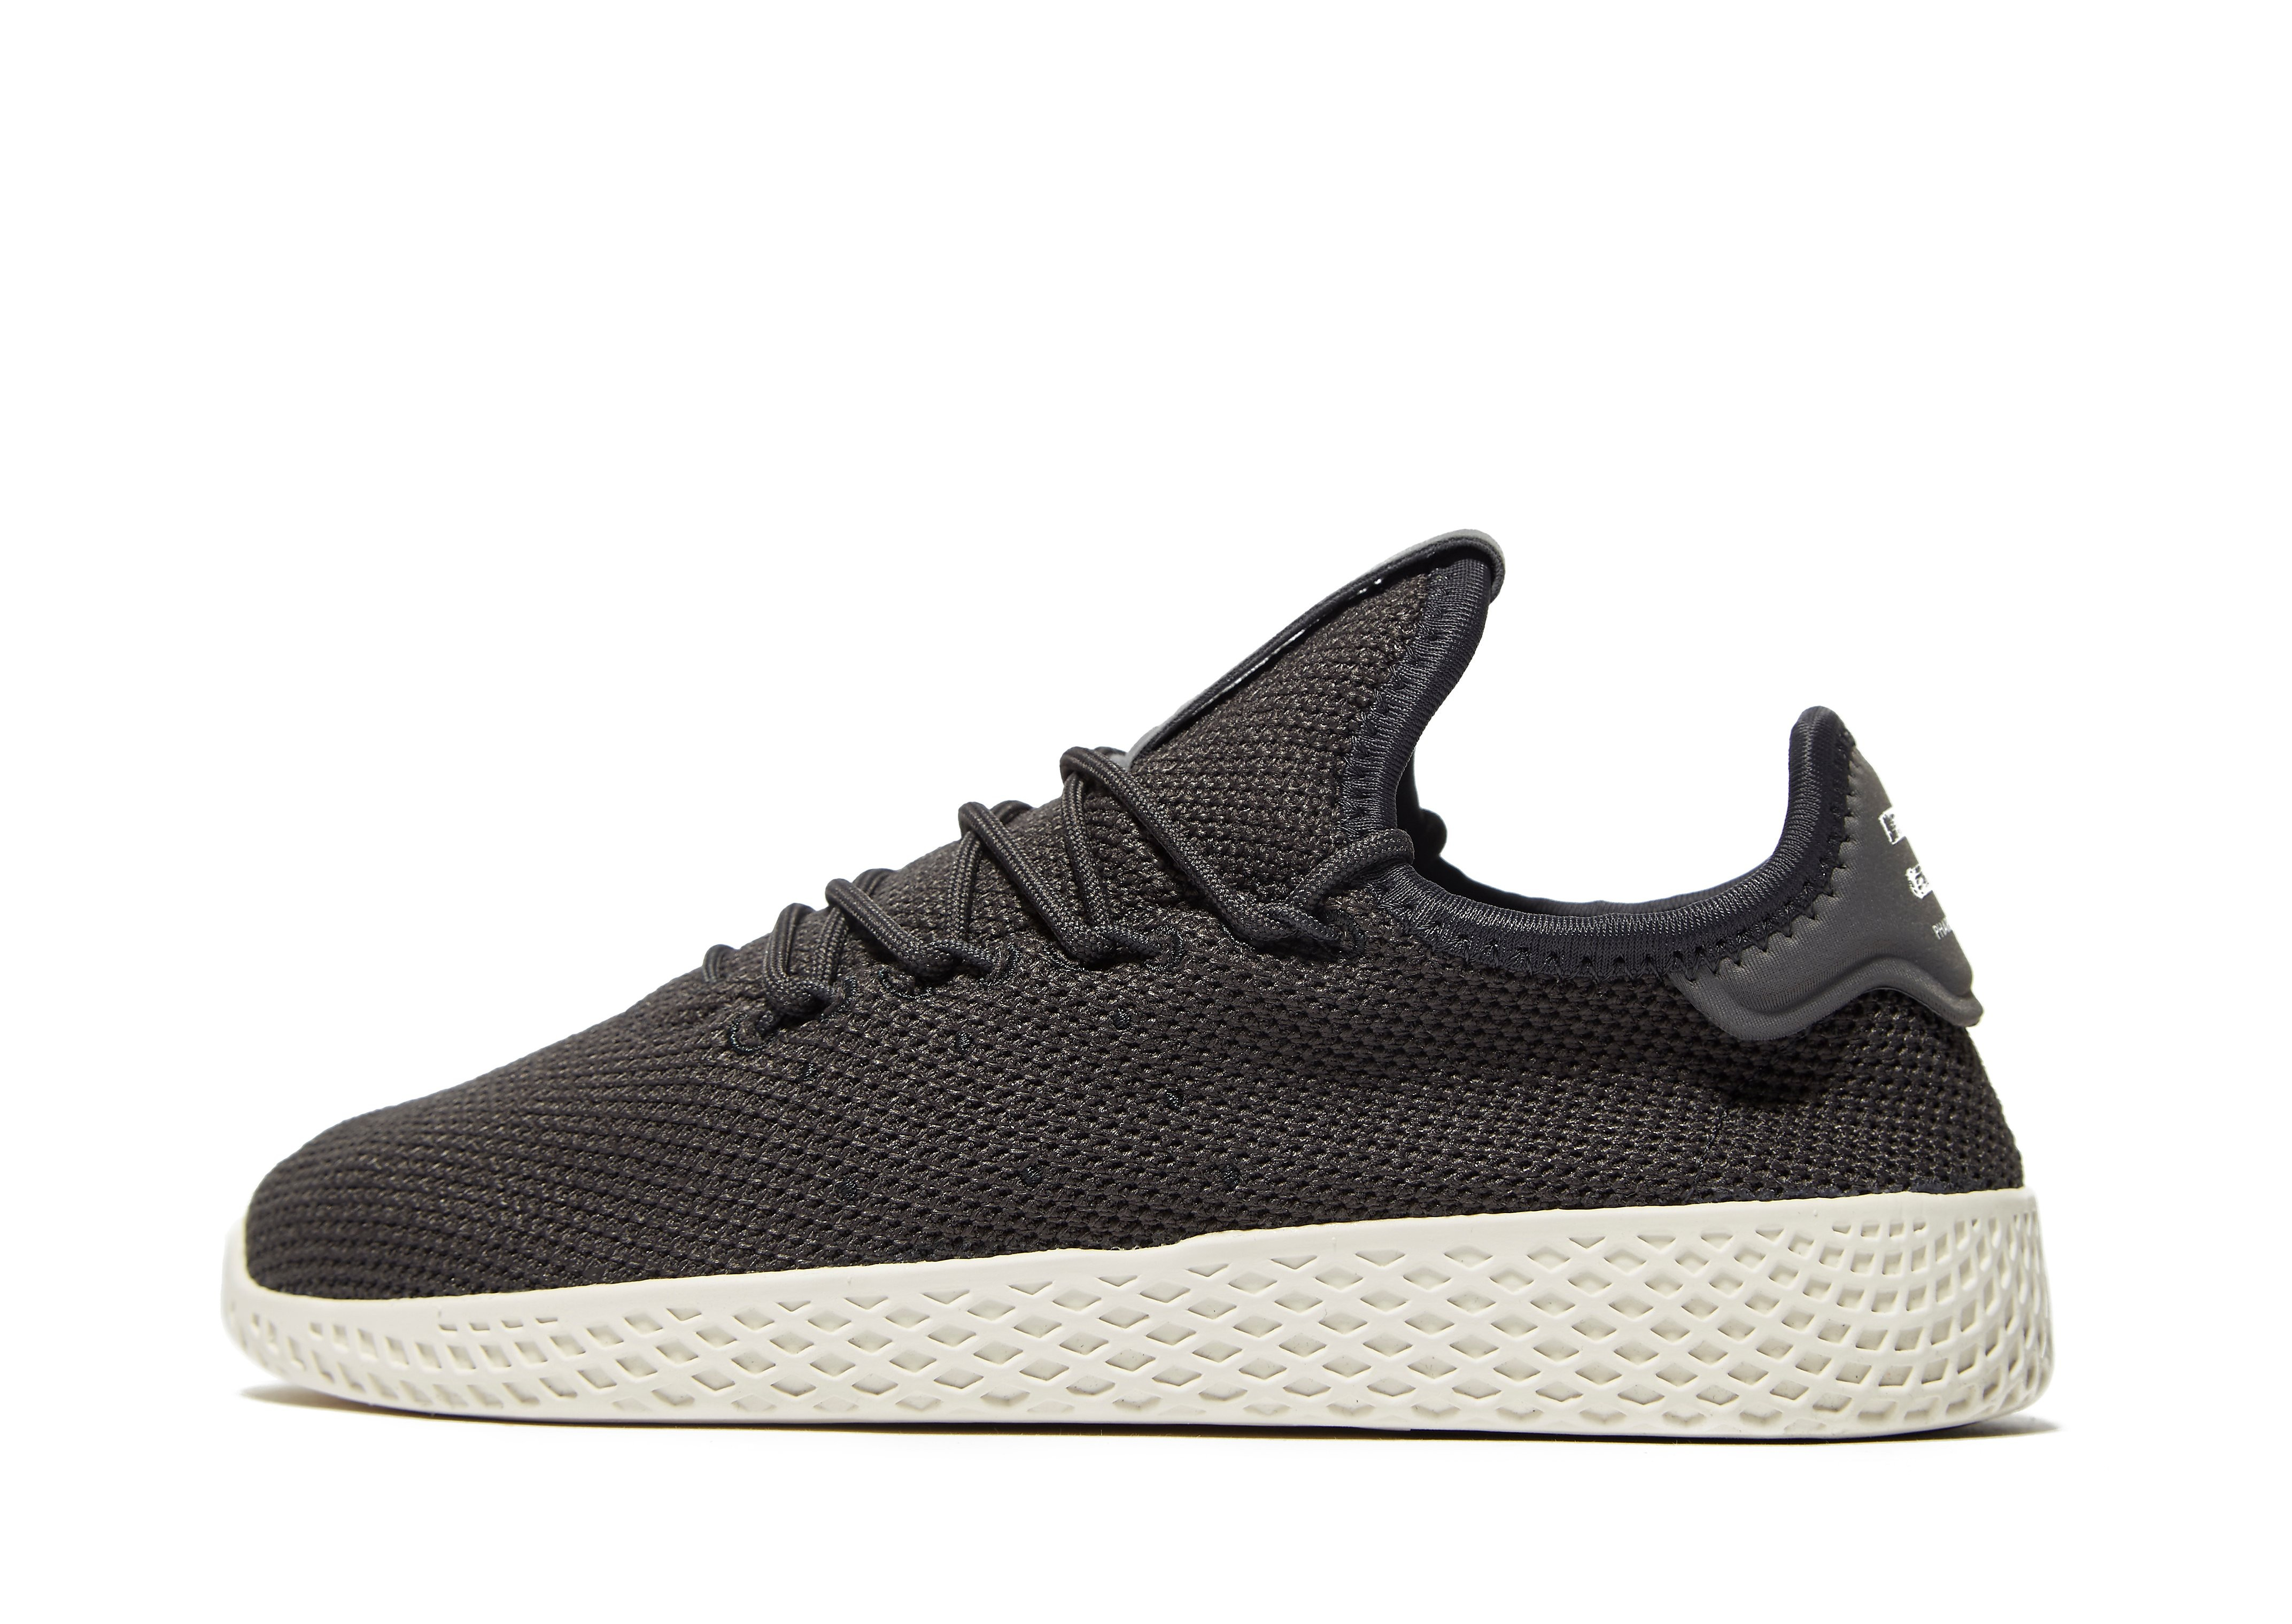 adidas Originals Pharrell Williams Tennis Hu Children